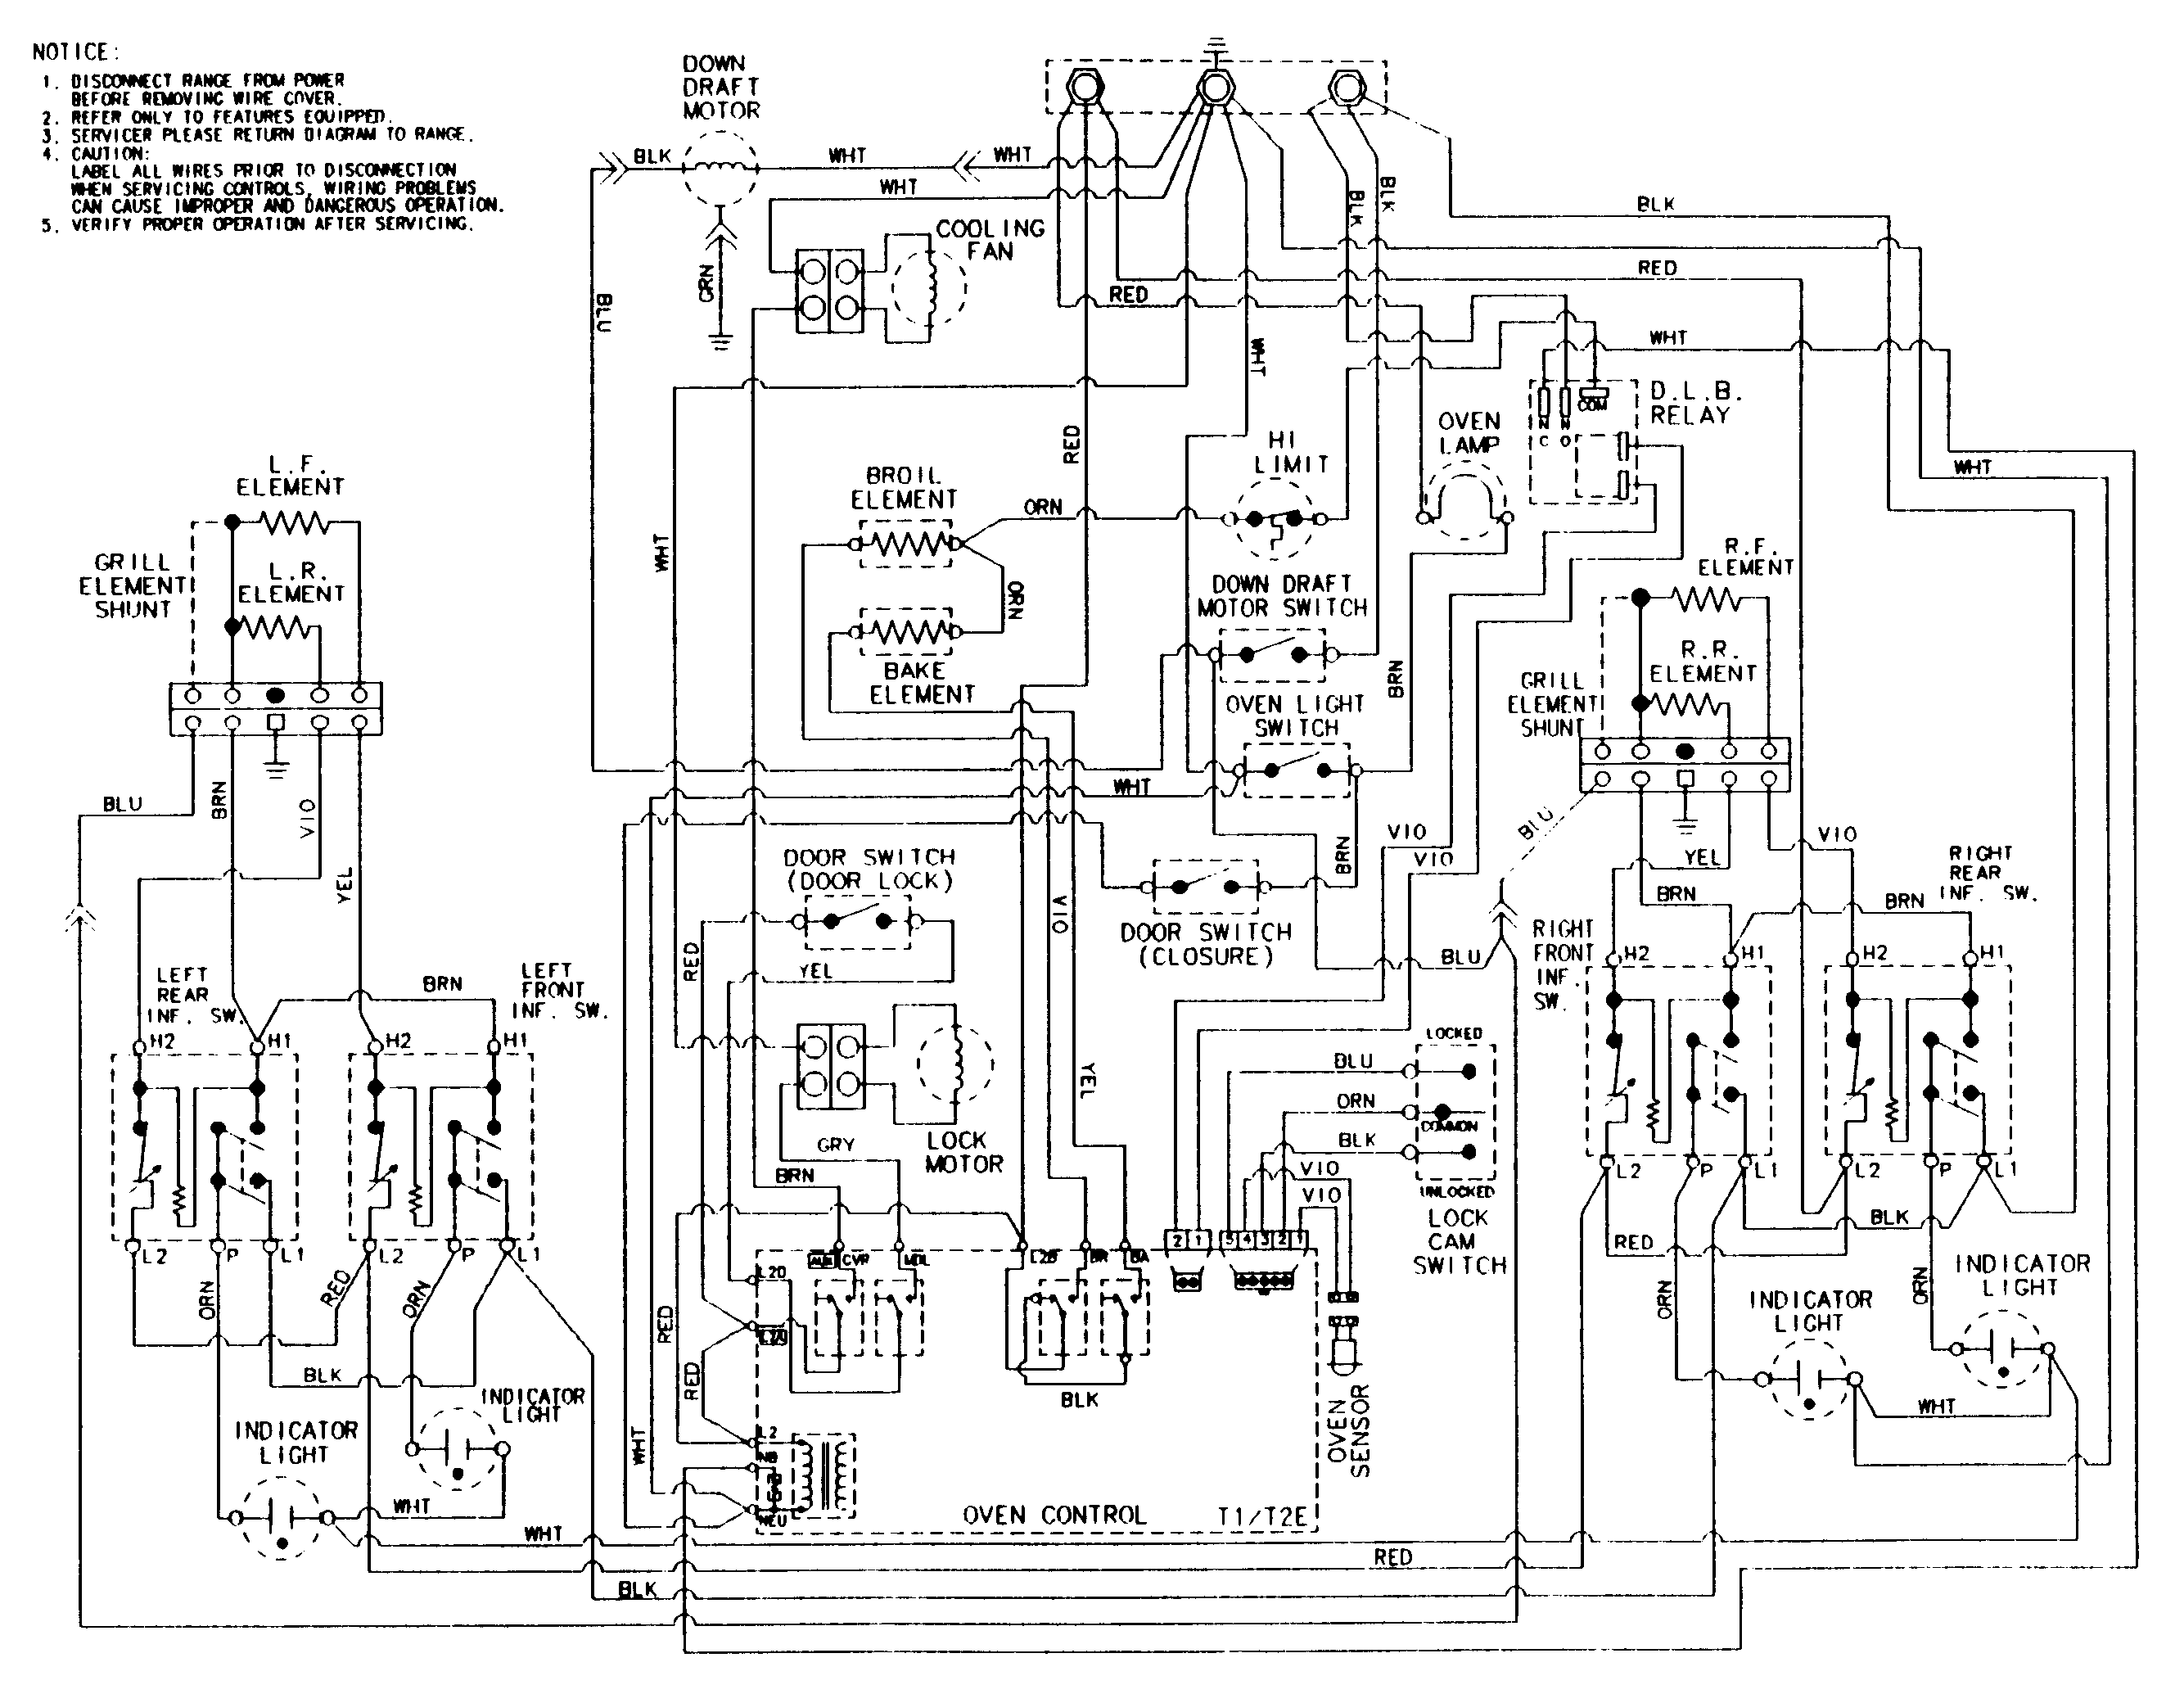 New Wiring Diagram Household #diagram #diagramsample #